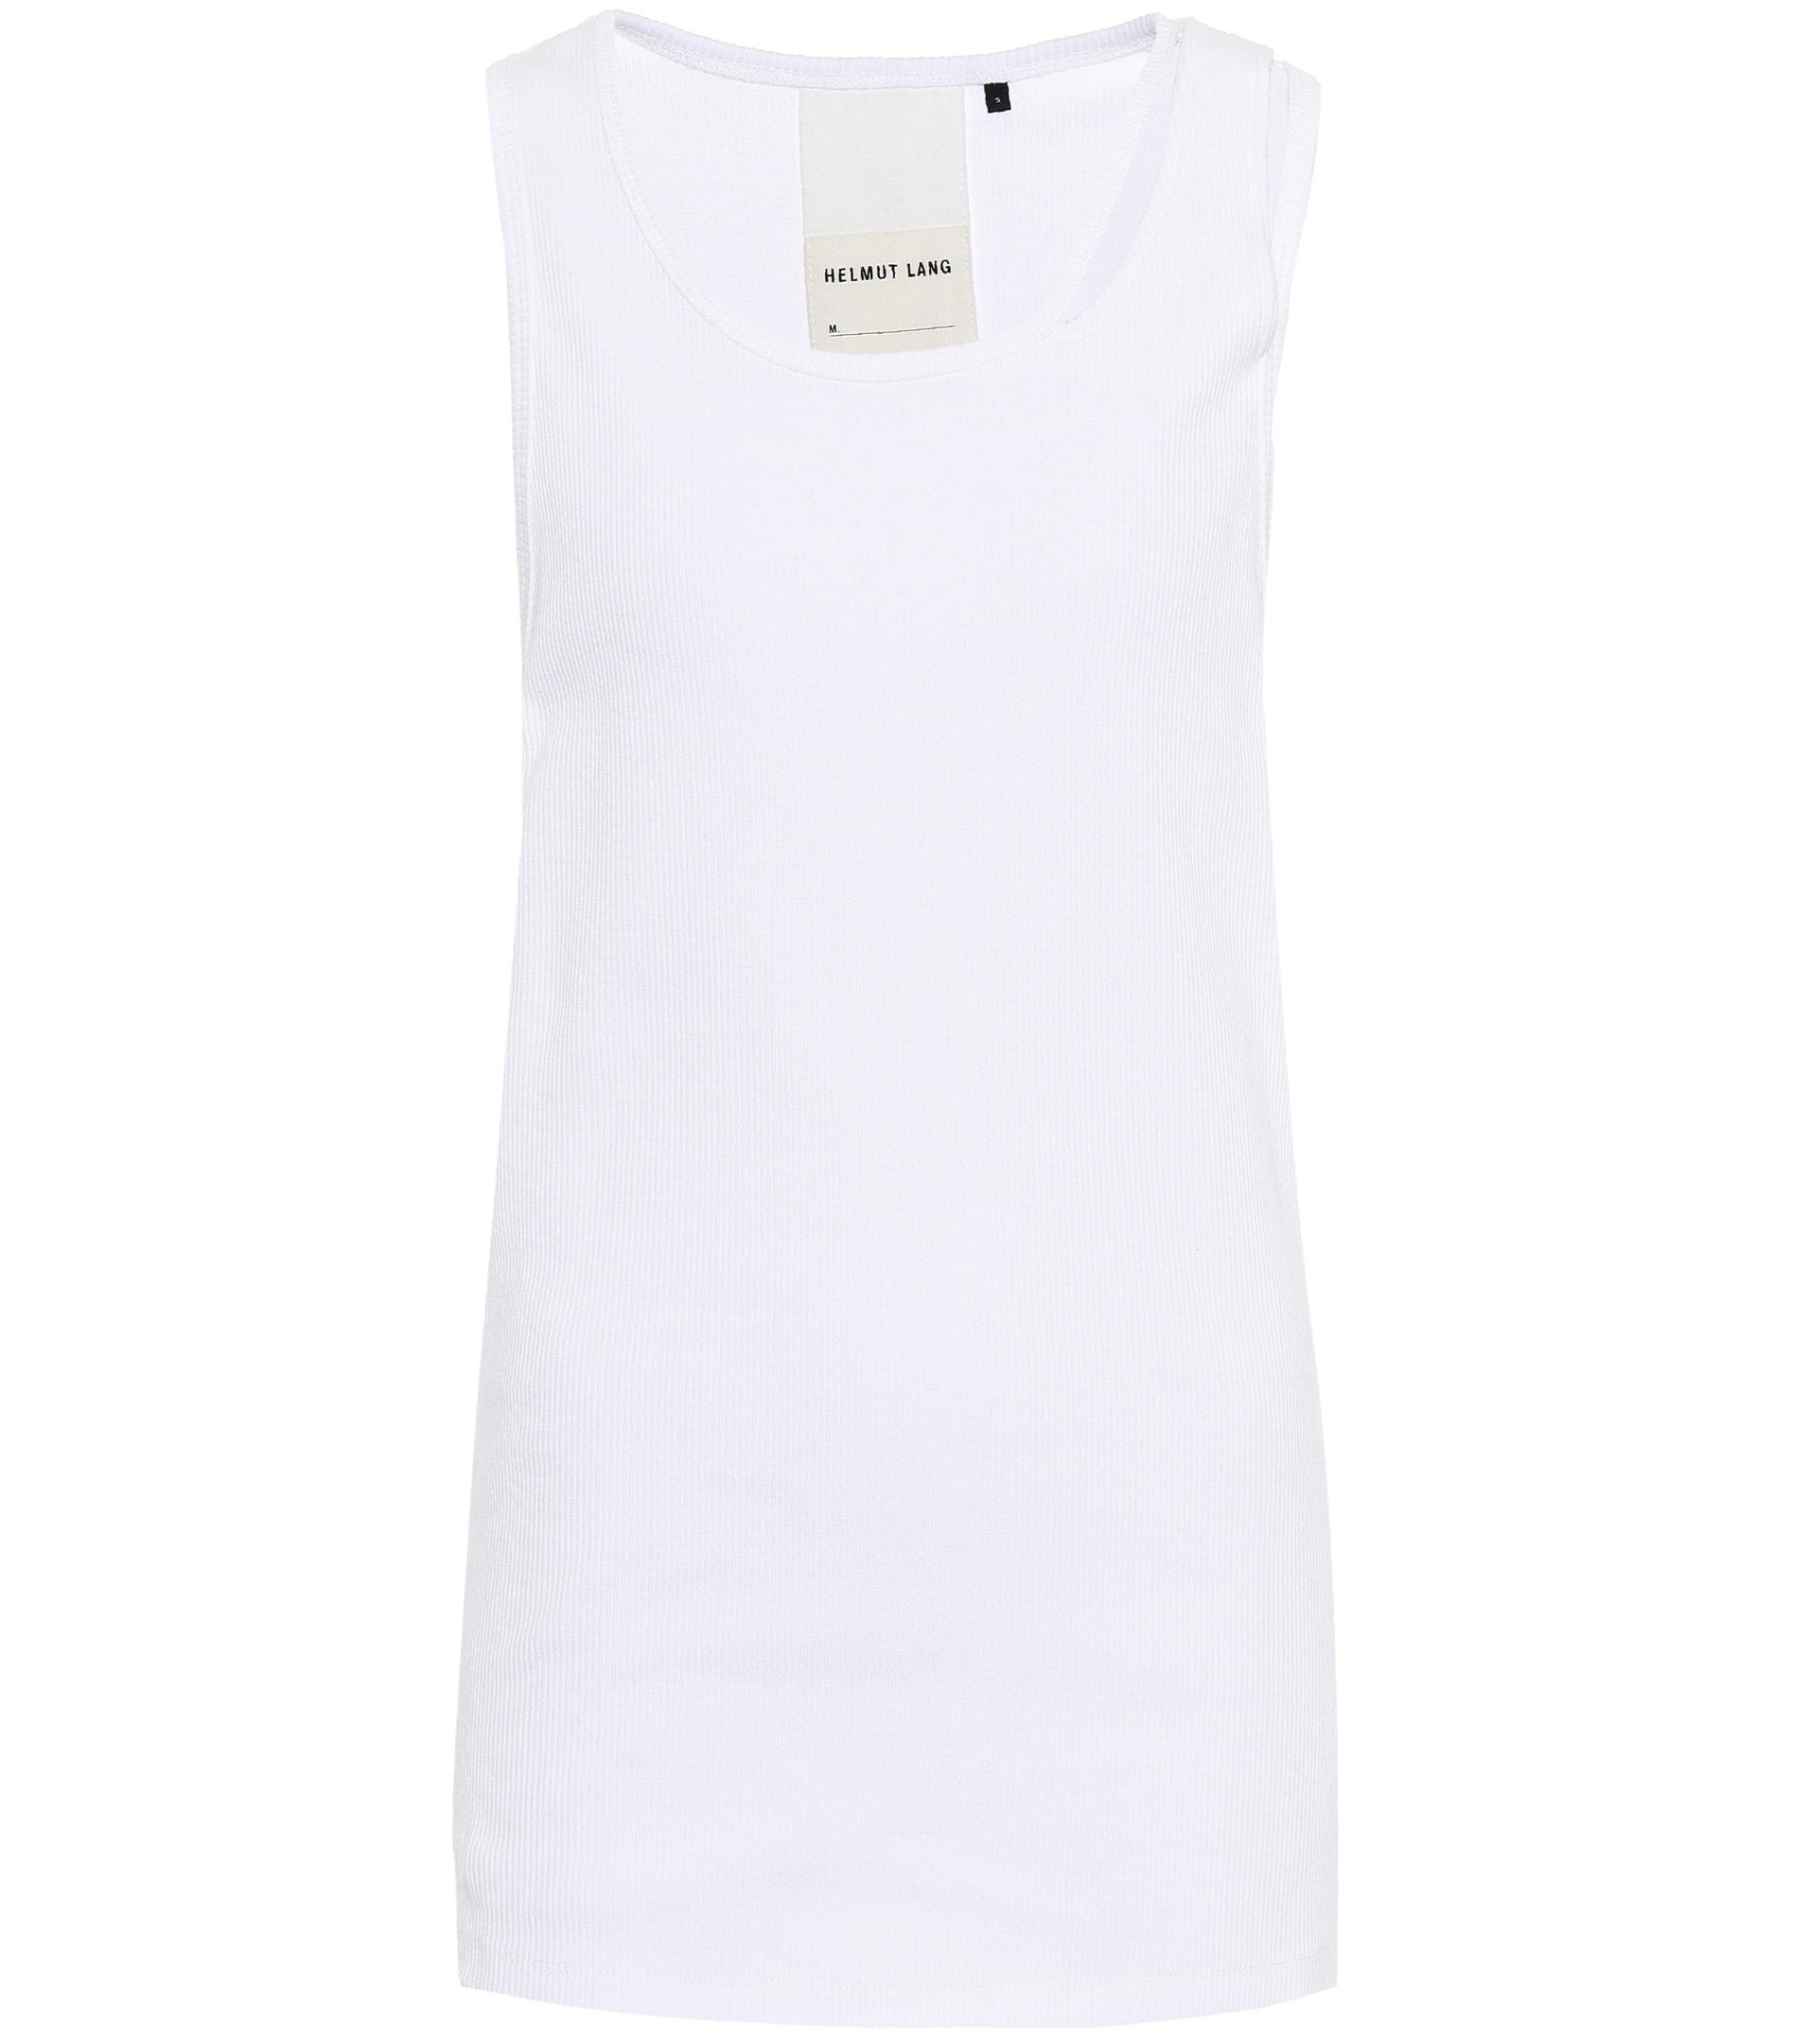 db0f24d448d59 Helmut Lang - White Reveal Cotton Tank Top - Lyst. View fullscreen